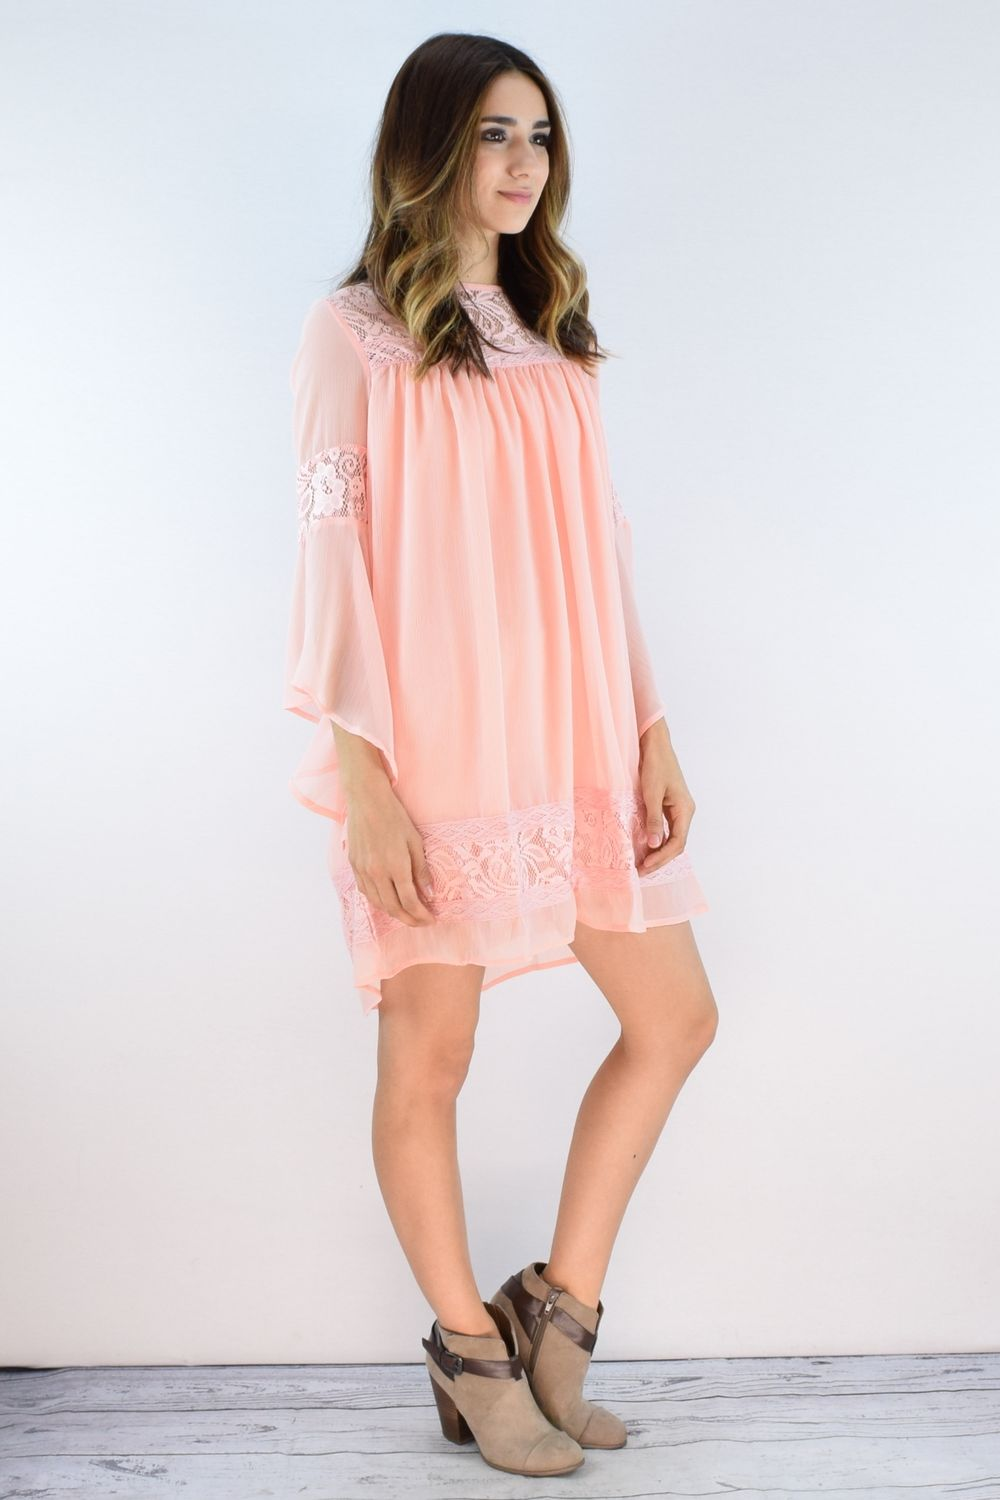 Pink Chiffon Angel Sleeve Mini Dress with Lace